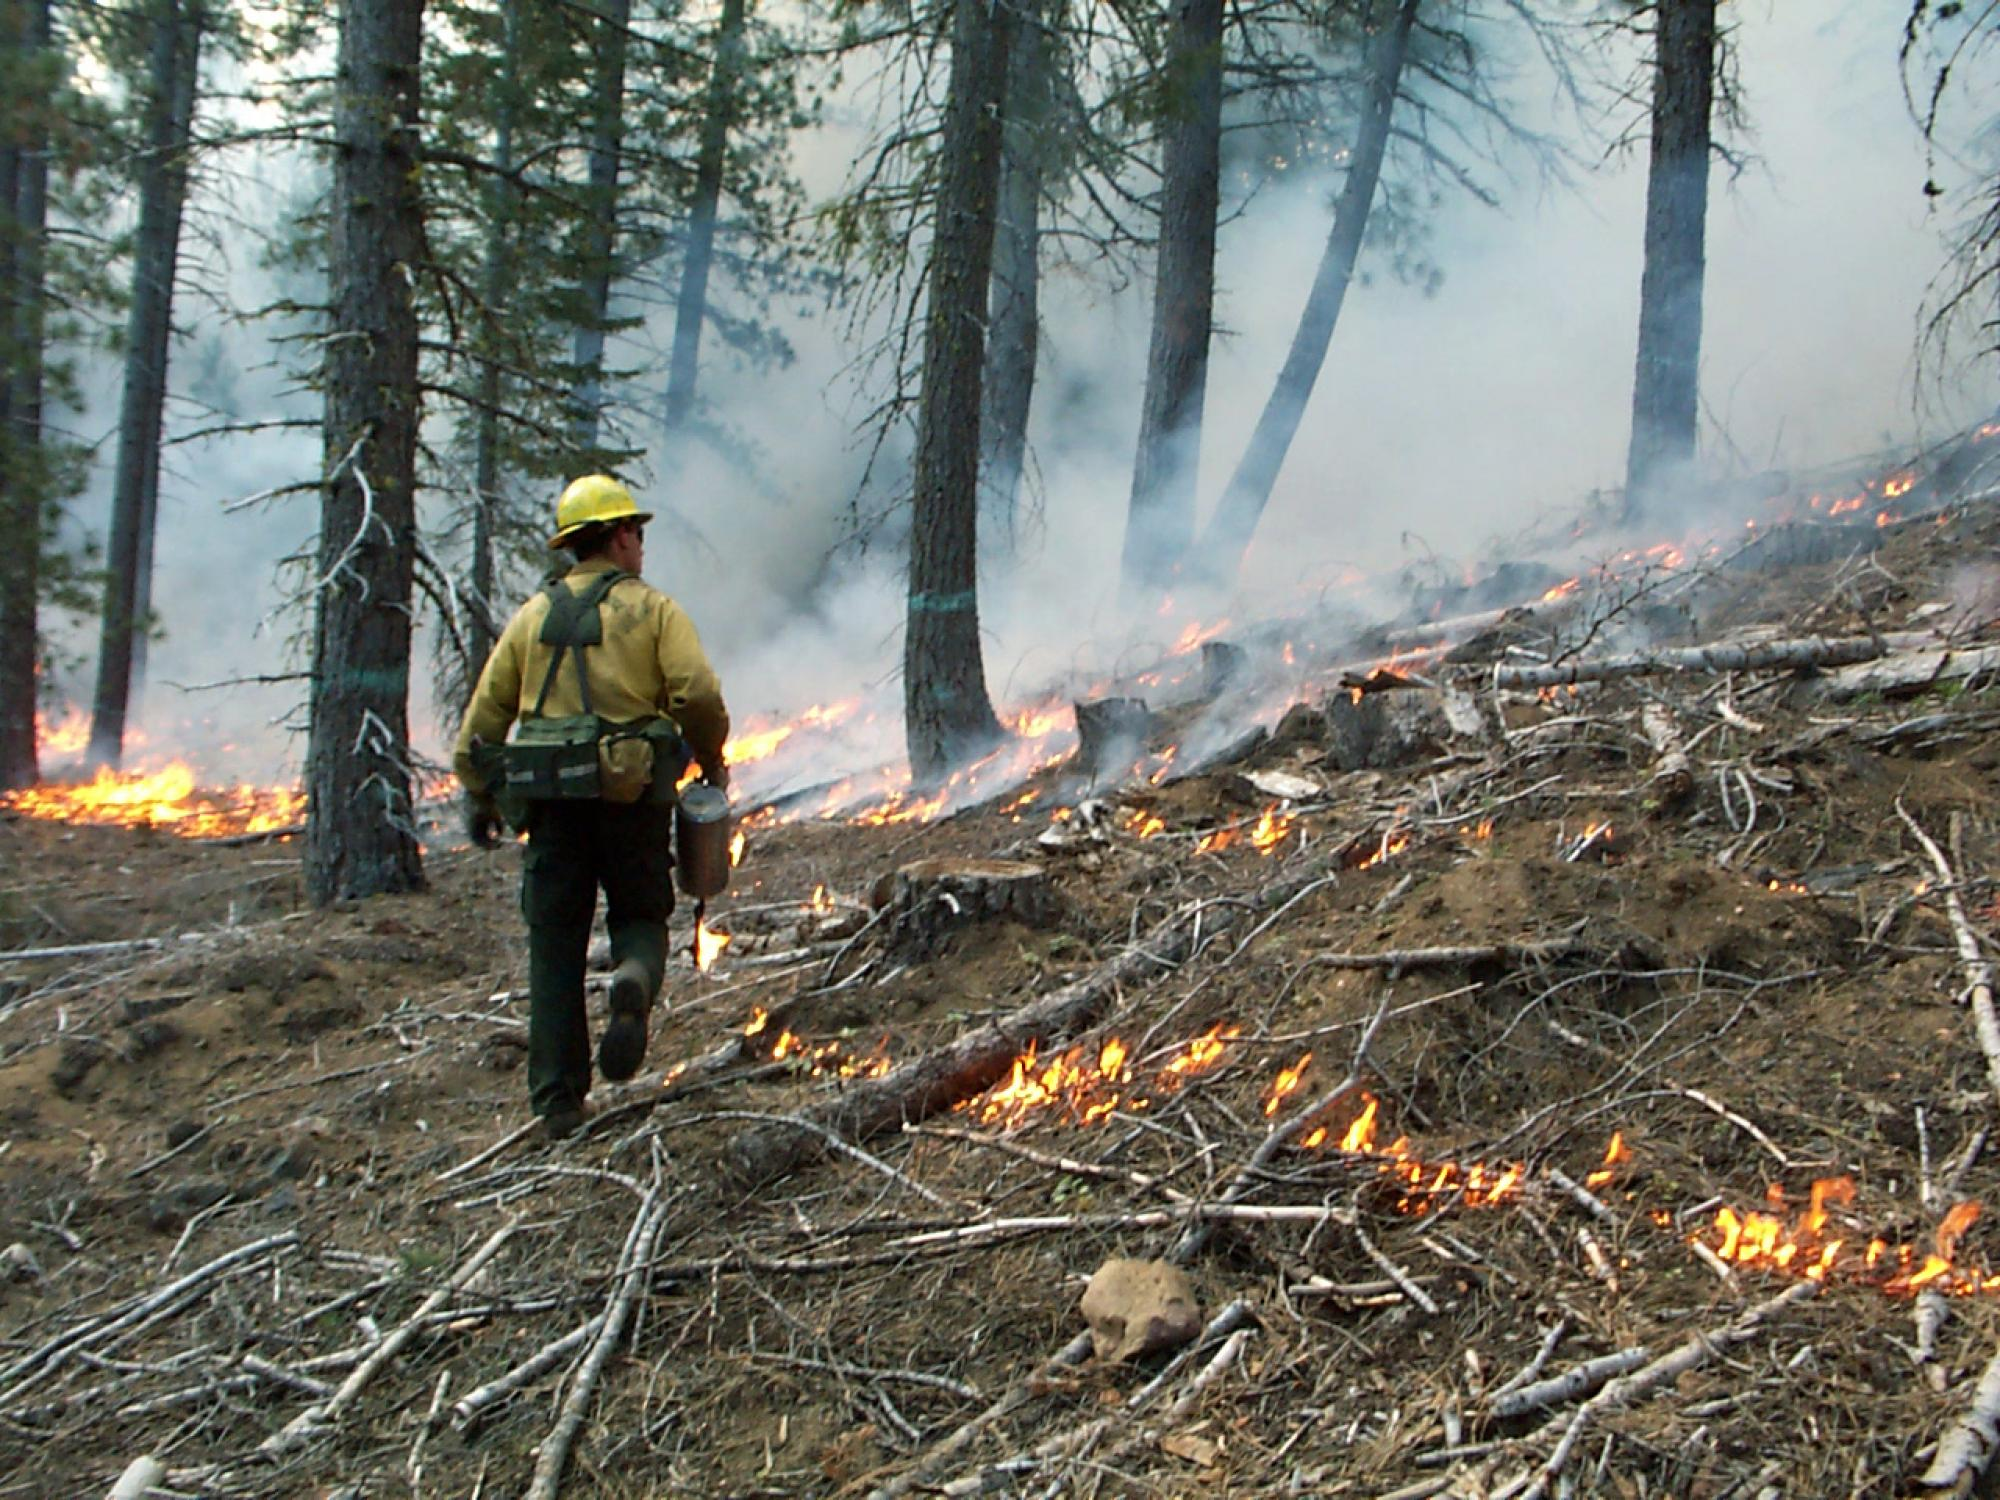 A U.S. Forest Service fire professional uses a drip torch to light a low-severity prescribed burn to reduce the fuel load in a mixed-conifer forest in the Goosenest Adaptive Management Area in northern California.